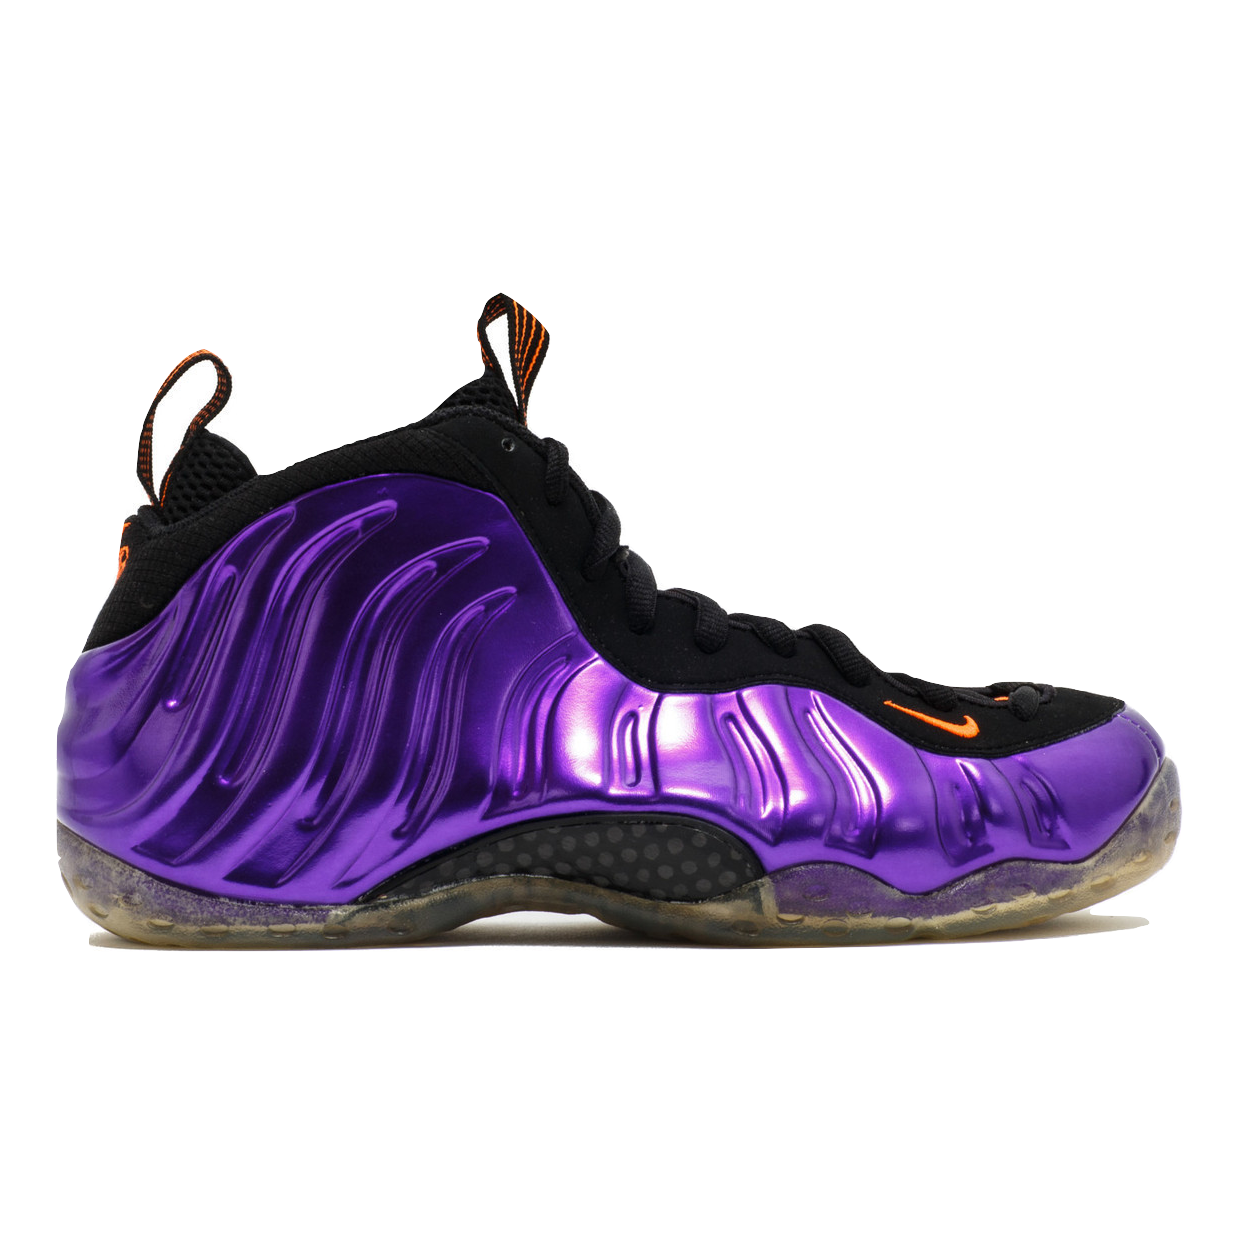 Air Foamposite One - Phoenix Suns